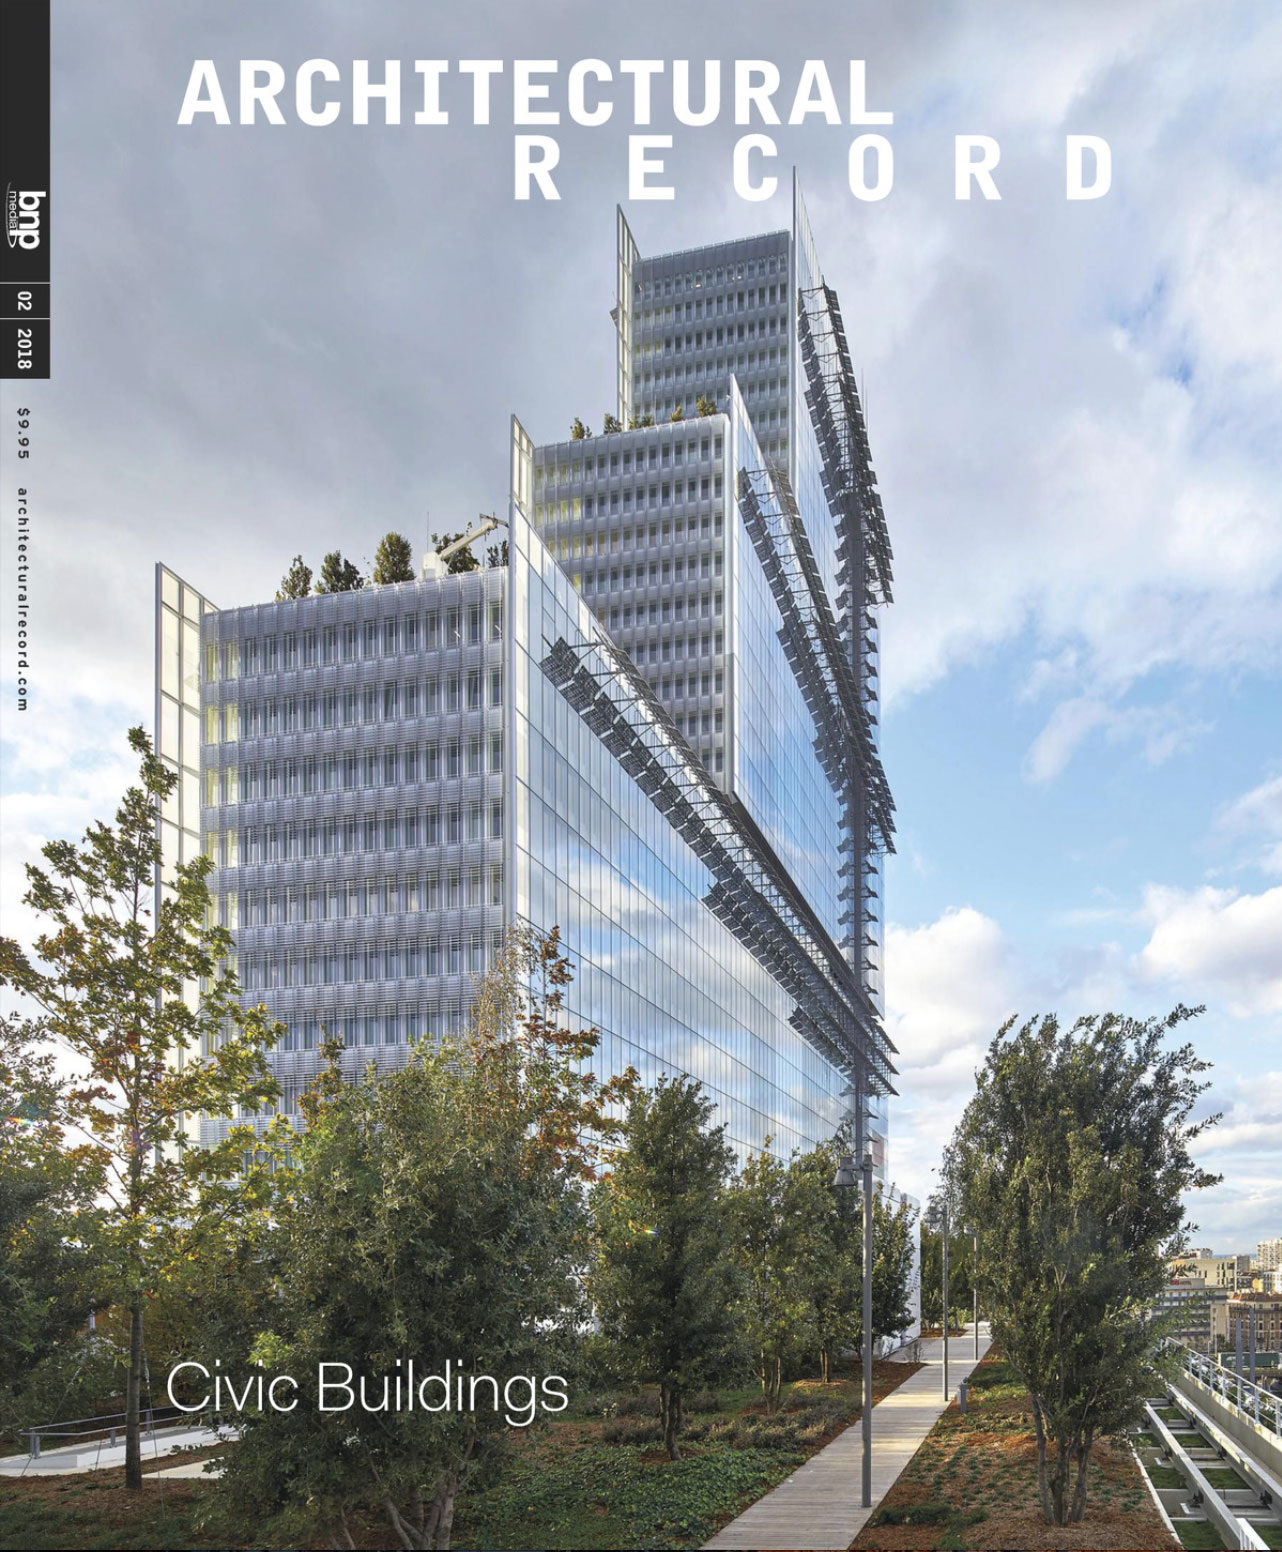 architectural-record-february-2018-cover